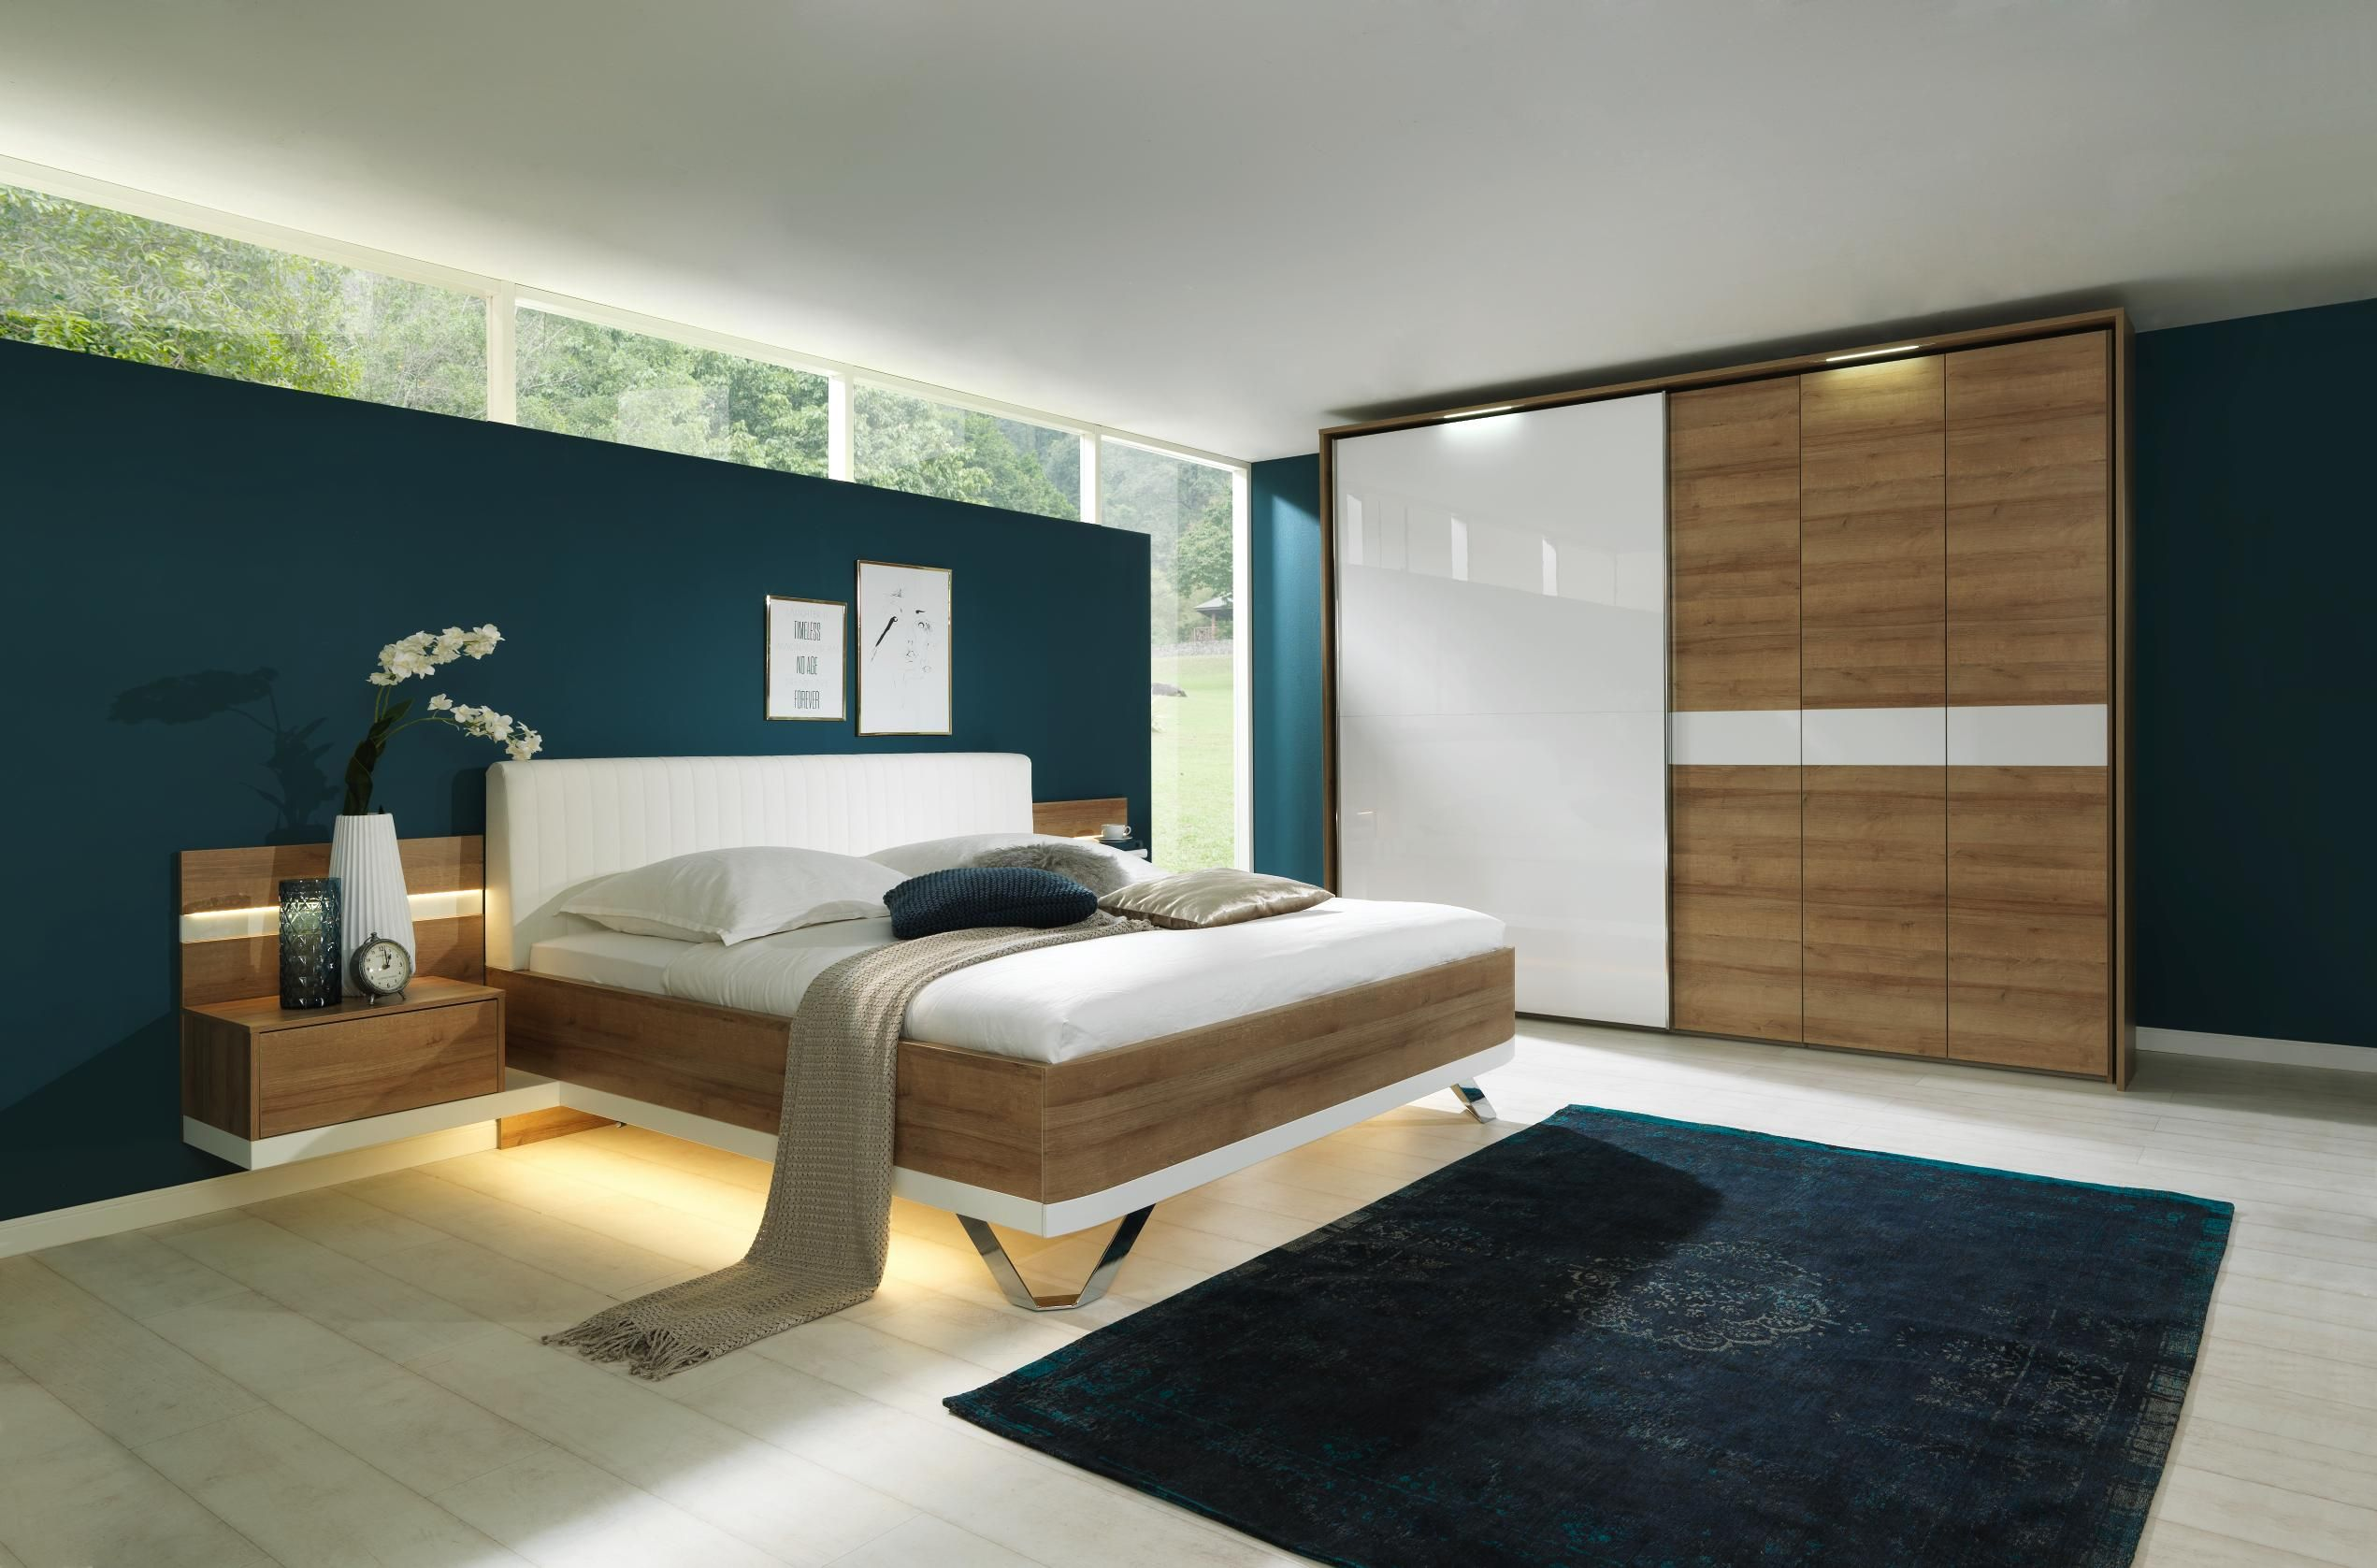 modernes schlafzimmer von dieter knoll in eichefarben und wei schlafzimmer in 2019. Black Bedroom Furniture Sets. Home Design Ideas